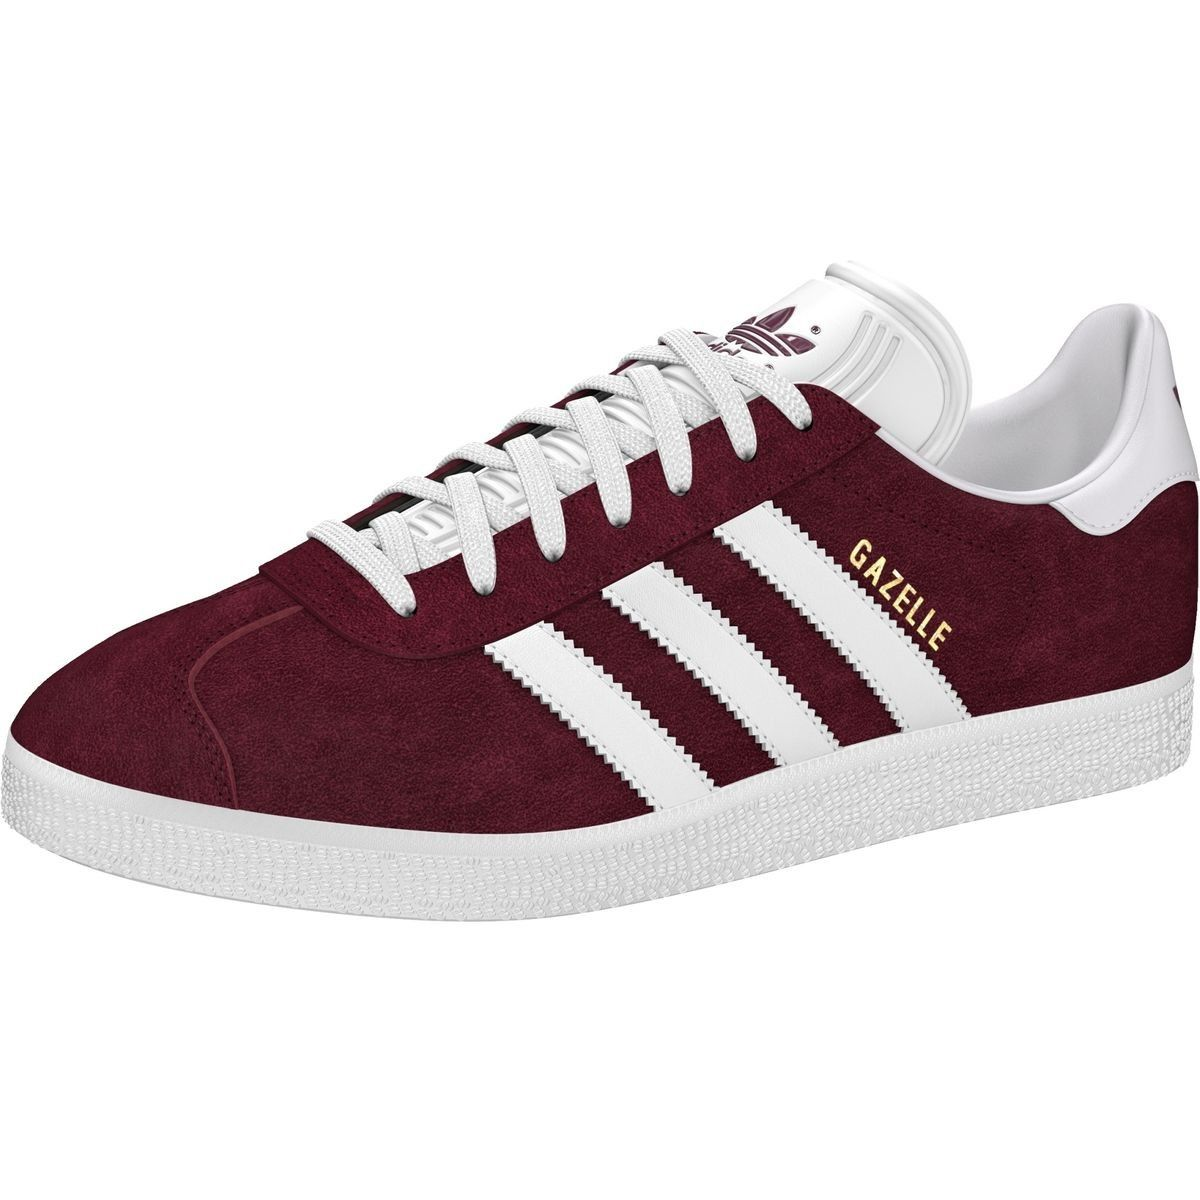 Chaussures Adidas Gazelle Bordeaux Bb5255 Taille : 44